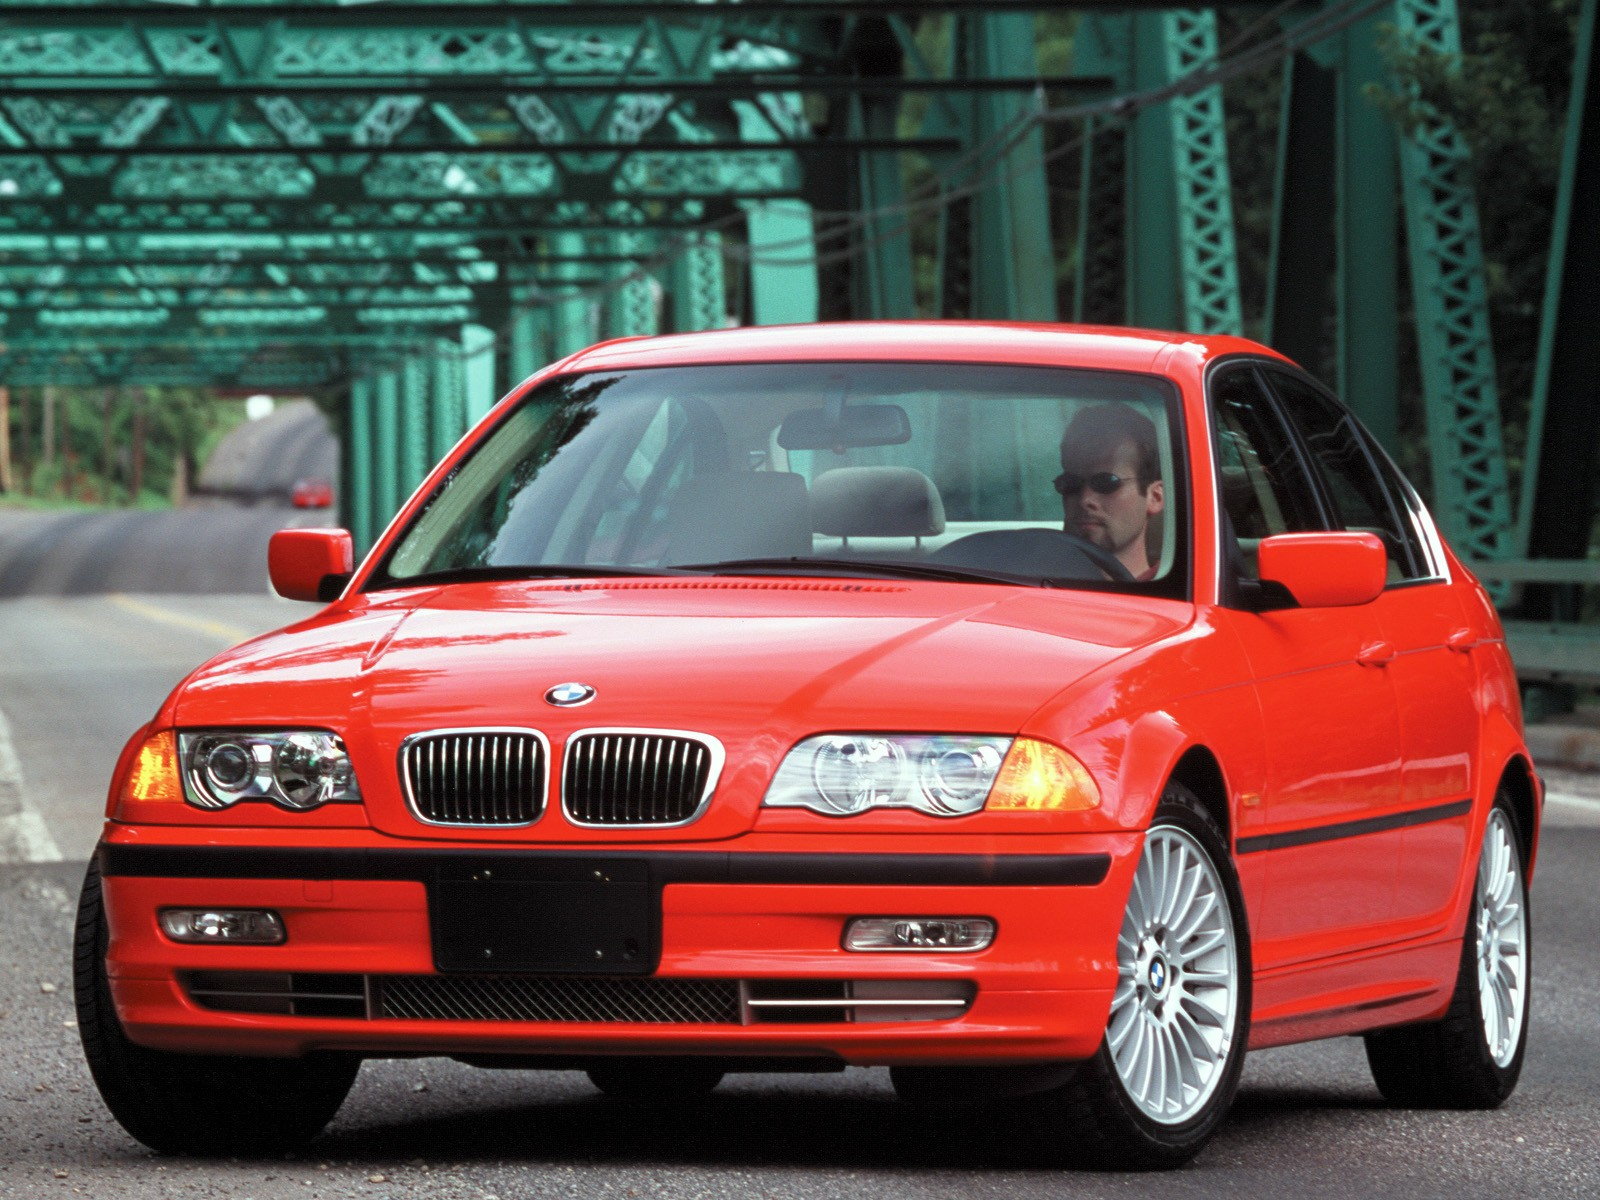 BMW 3 series 330i 1999 photo - 4